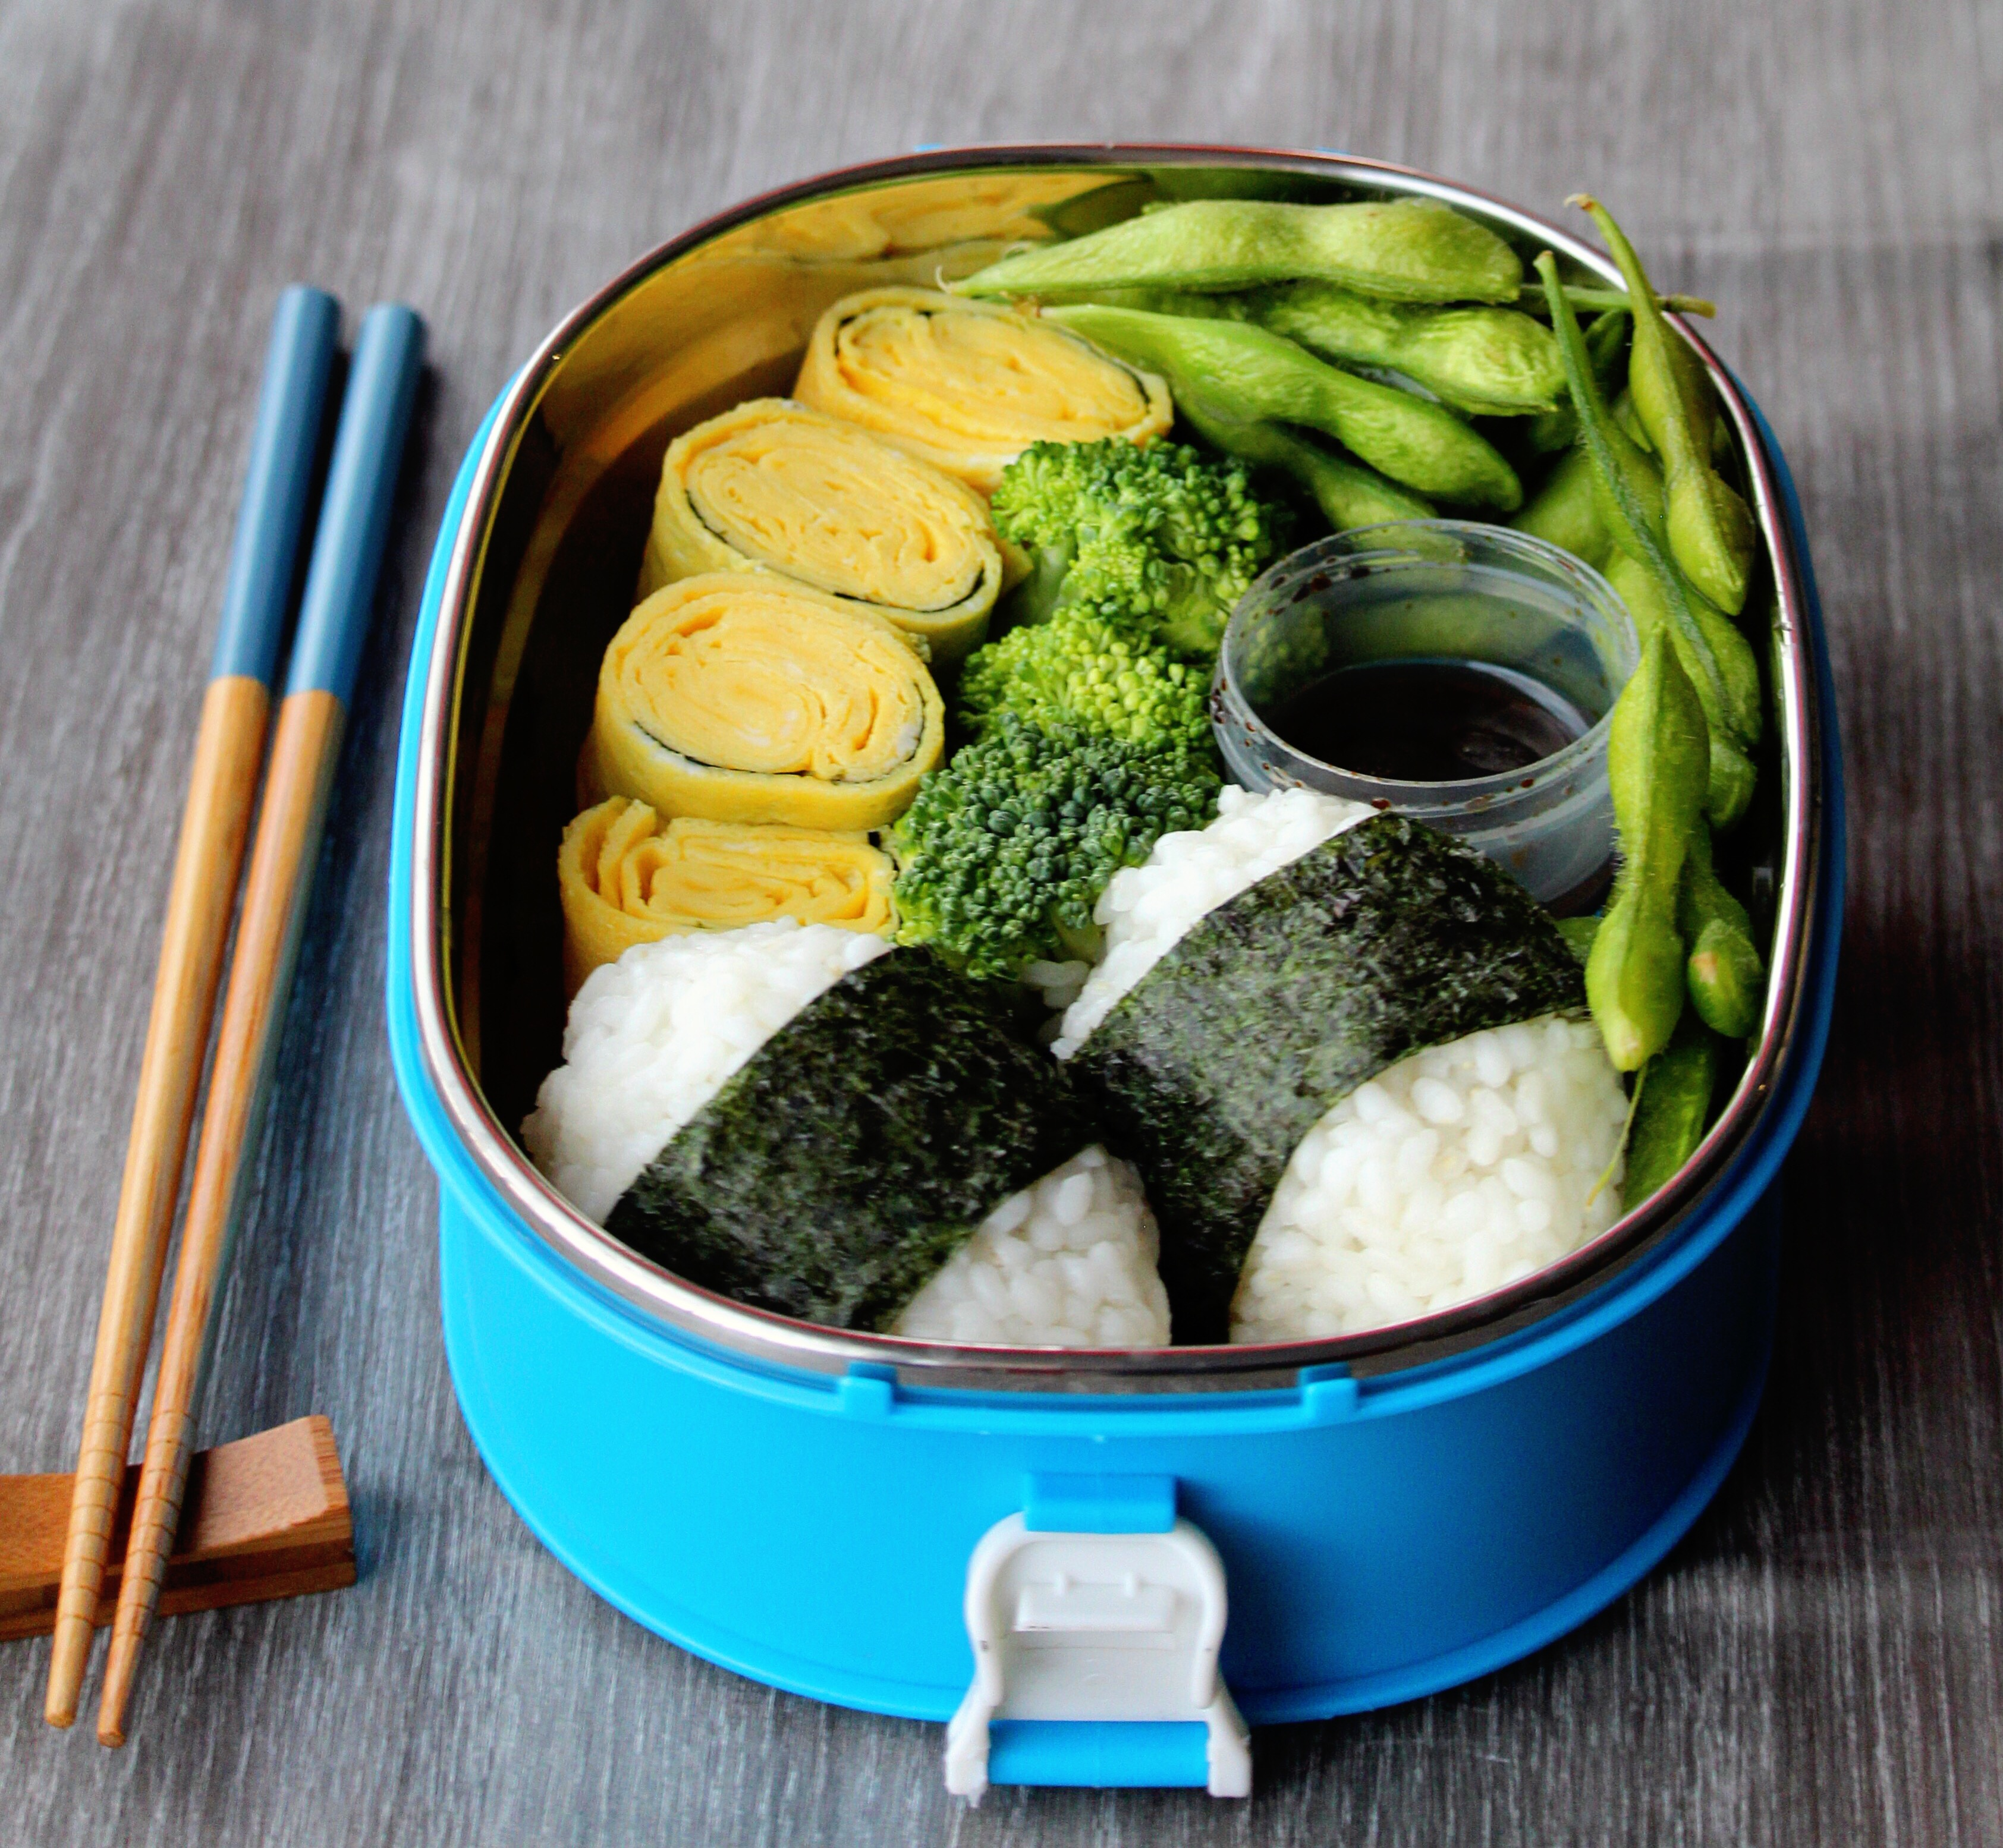 A traditional Japanese bento, this one is different than a basic cheese and cracker one. The onigiri can be created and shaped in cute designs or animal figures, which would be perfect for any kid's lunchtime box.